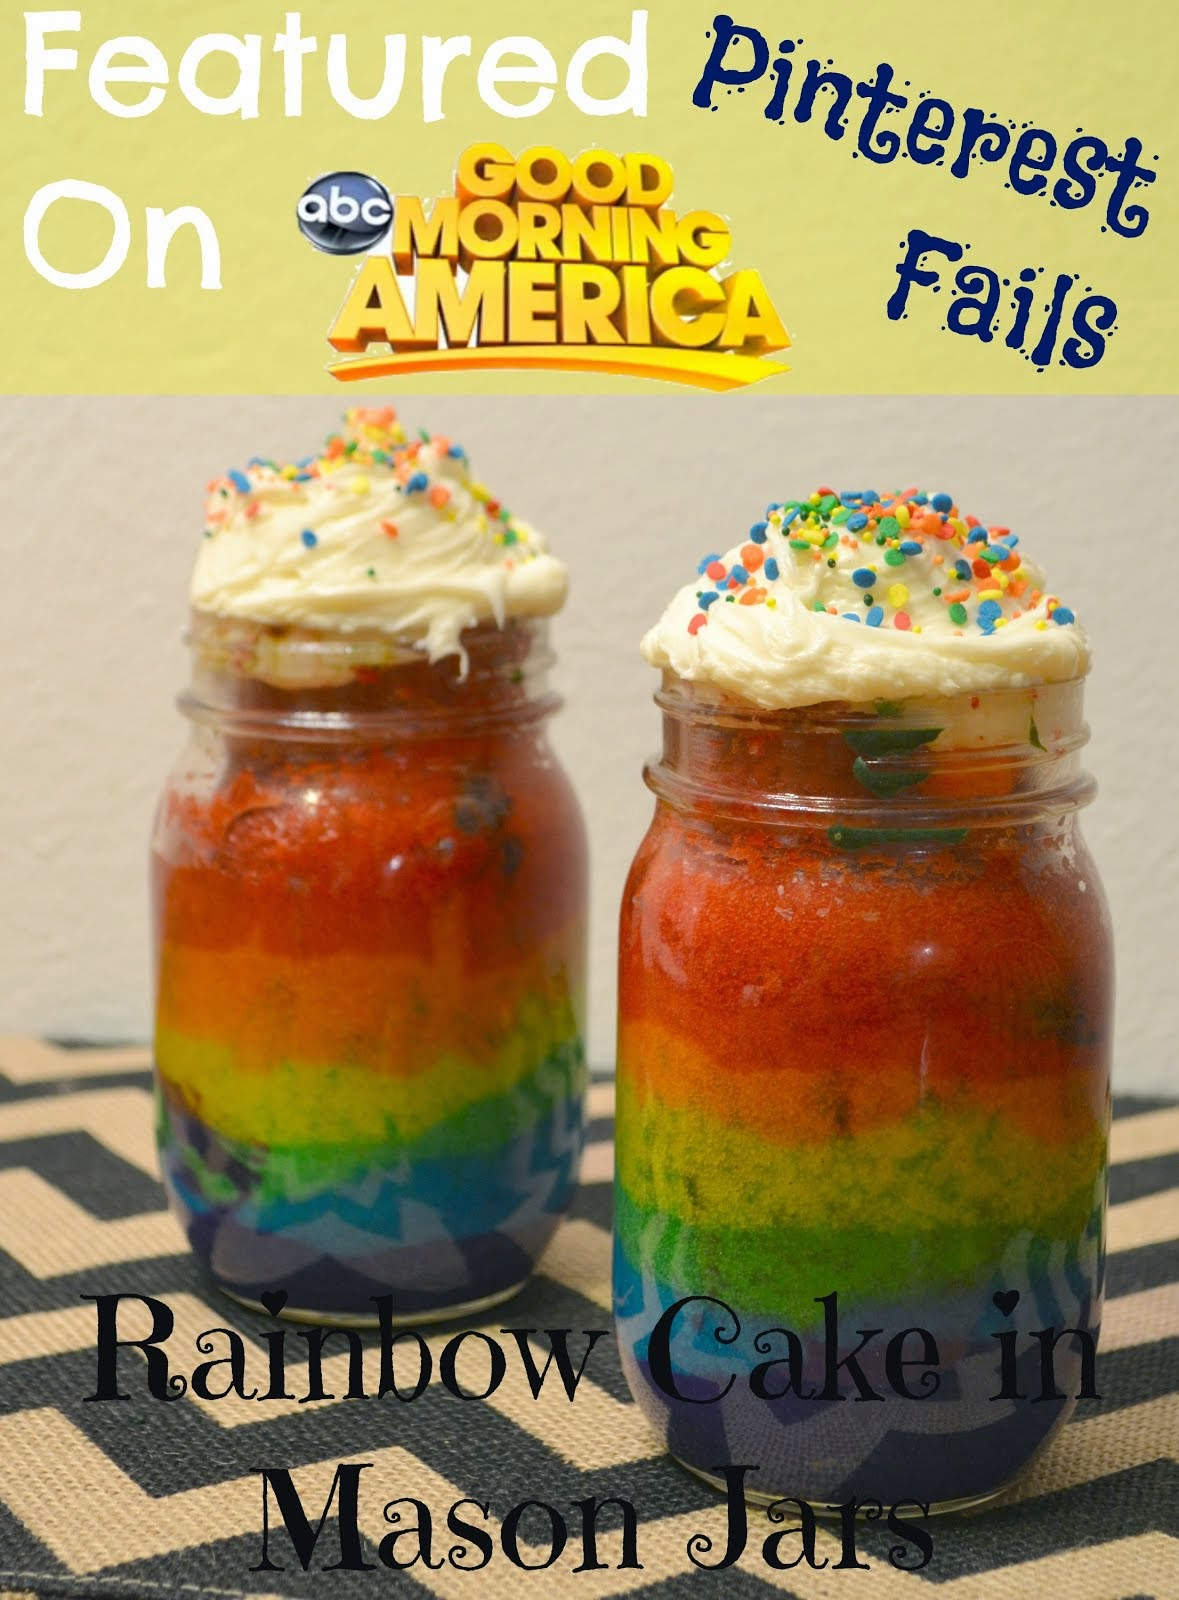 Pinterest Fail - Good Morning America Feature